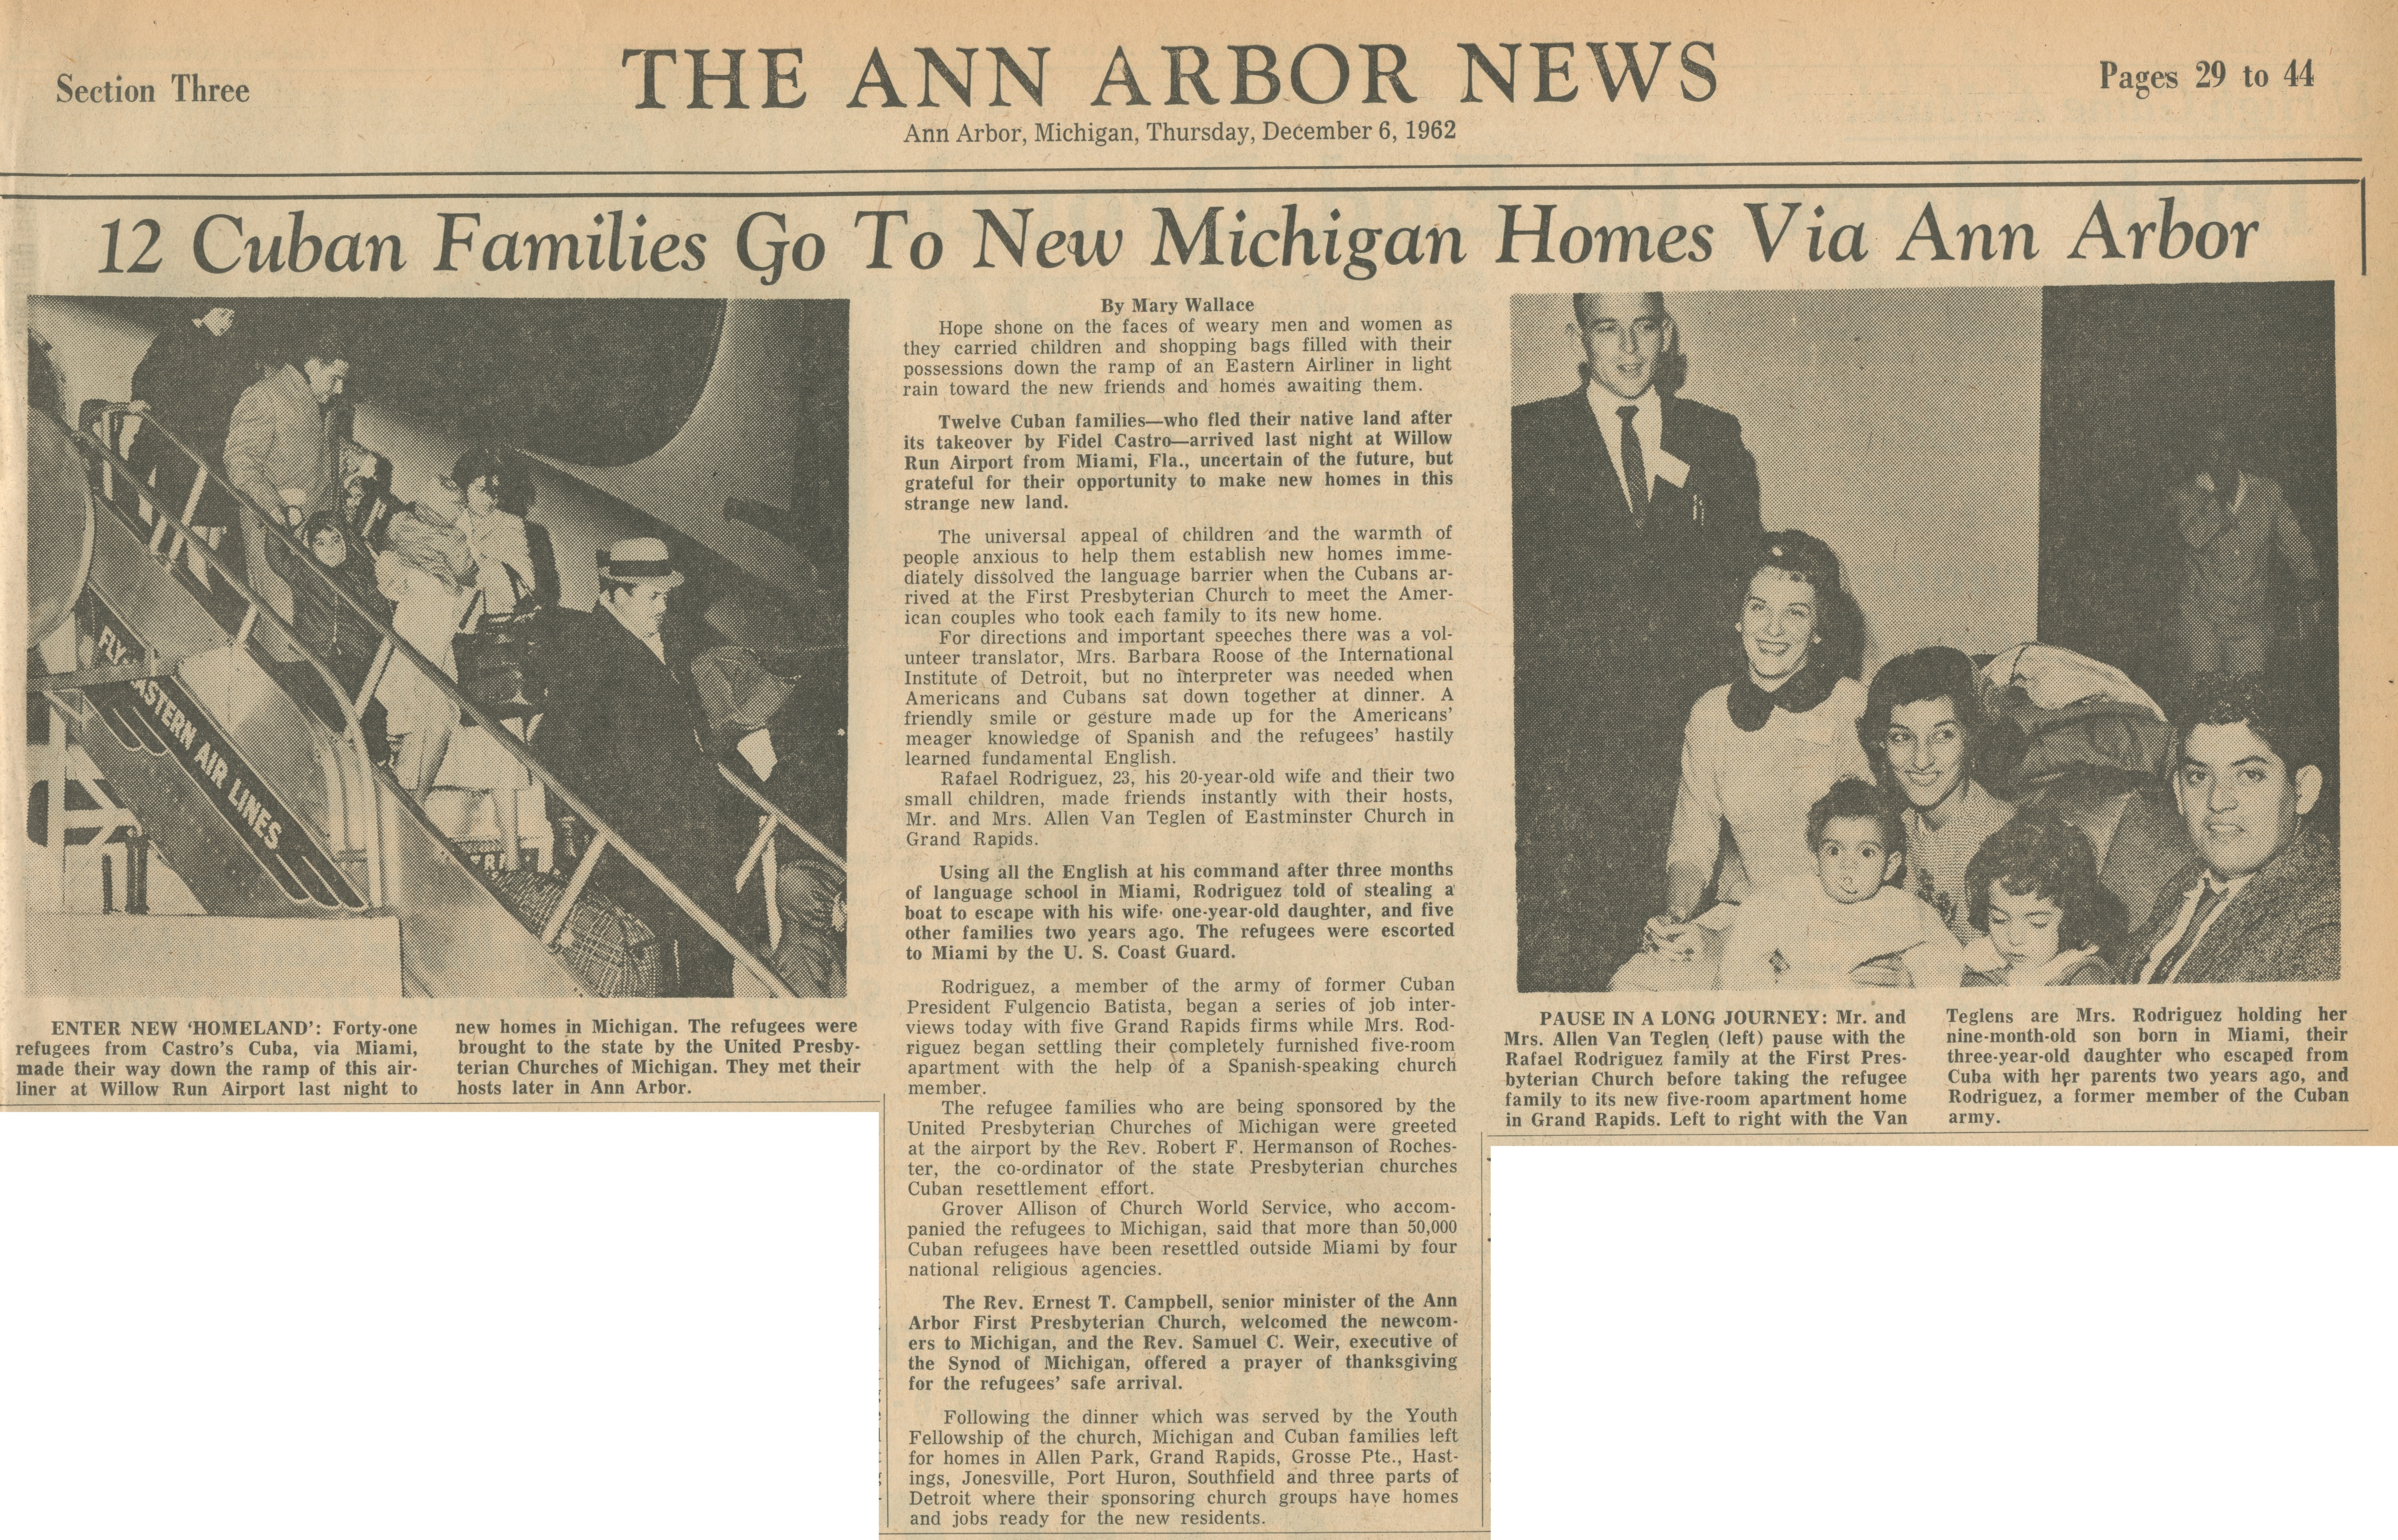 12 Cuban Families Go To New Michigan Homes Via Ann Arbor image